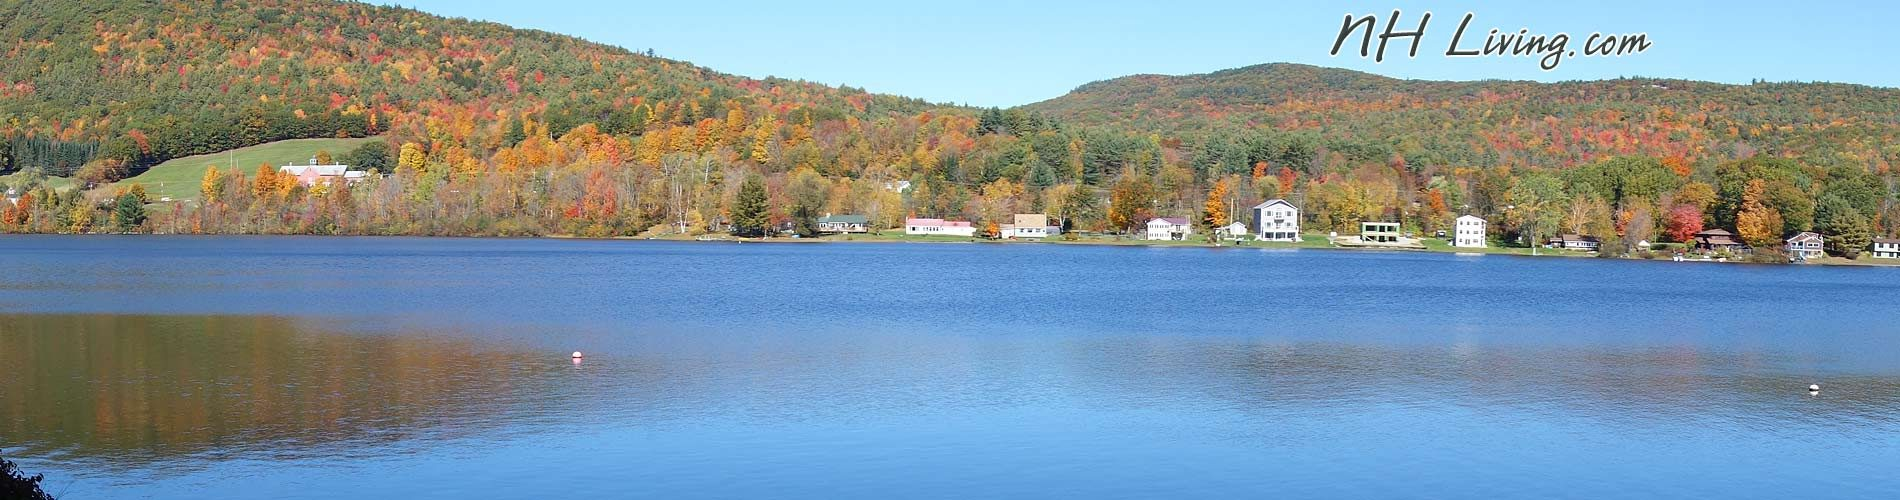 NH Lakefront Real Estate Vacation Home Rentals Cabins Cottages Luxury Lodging